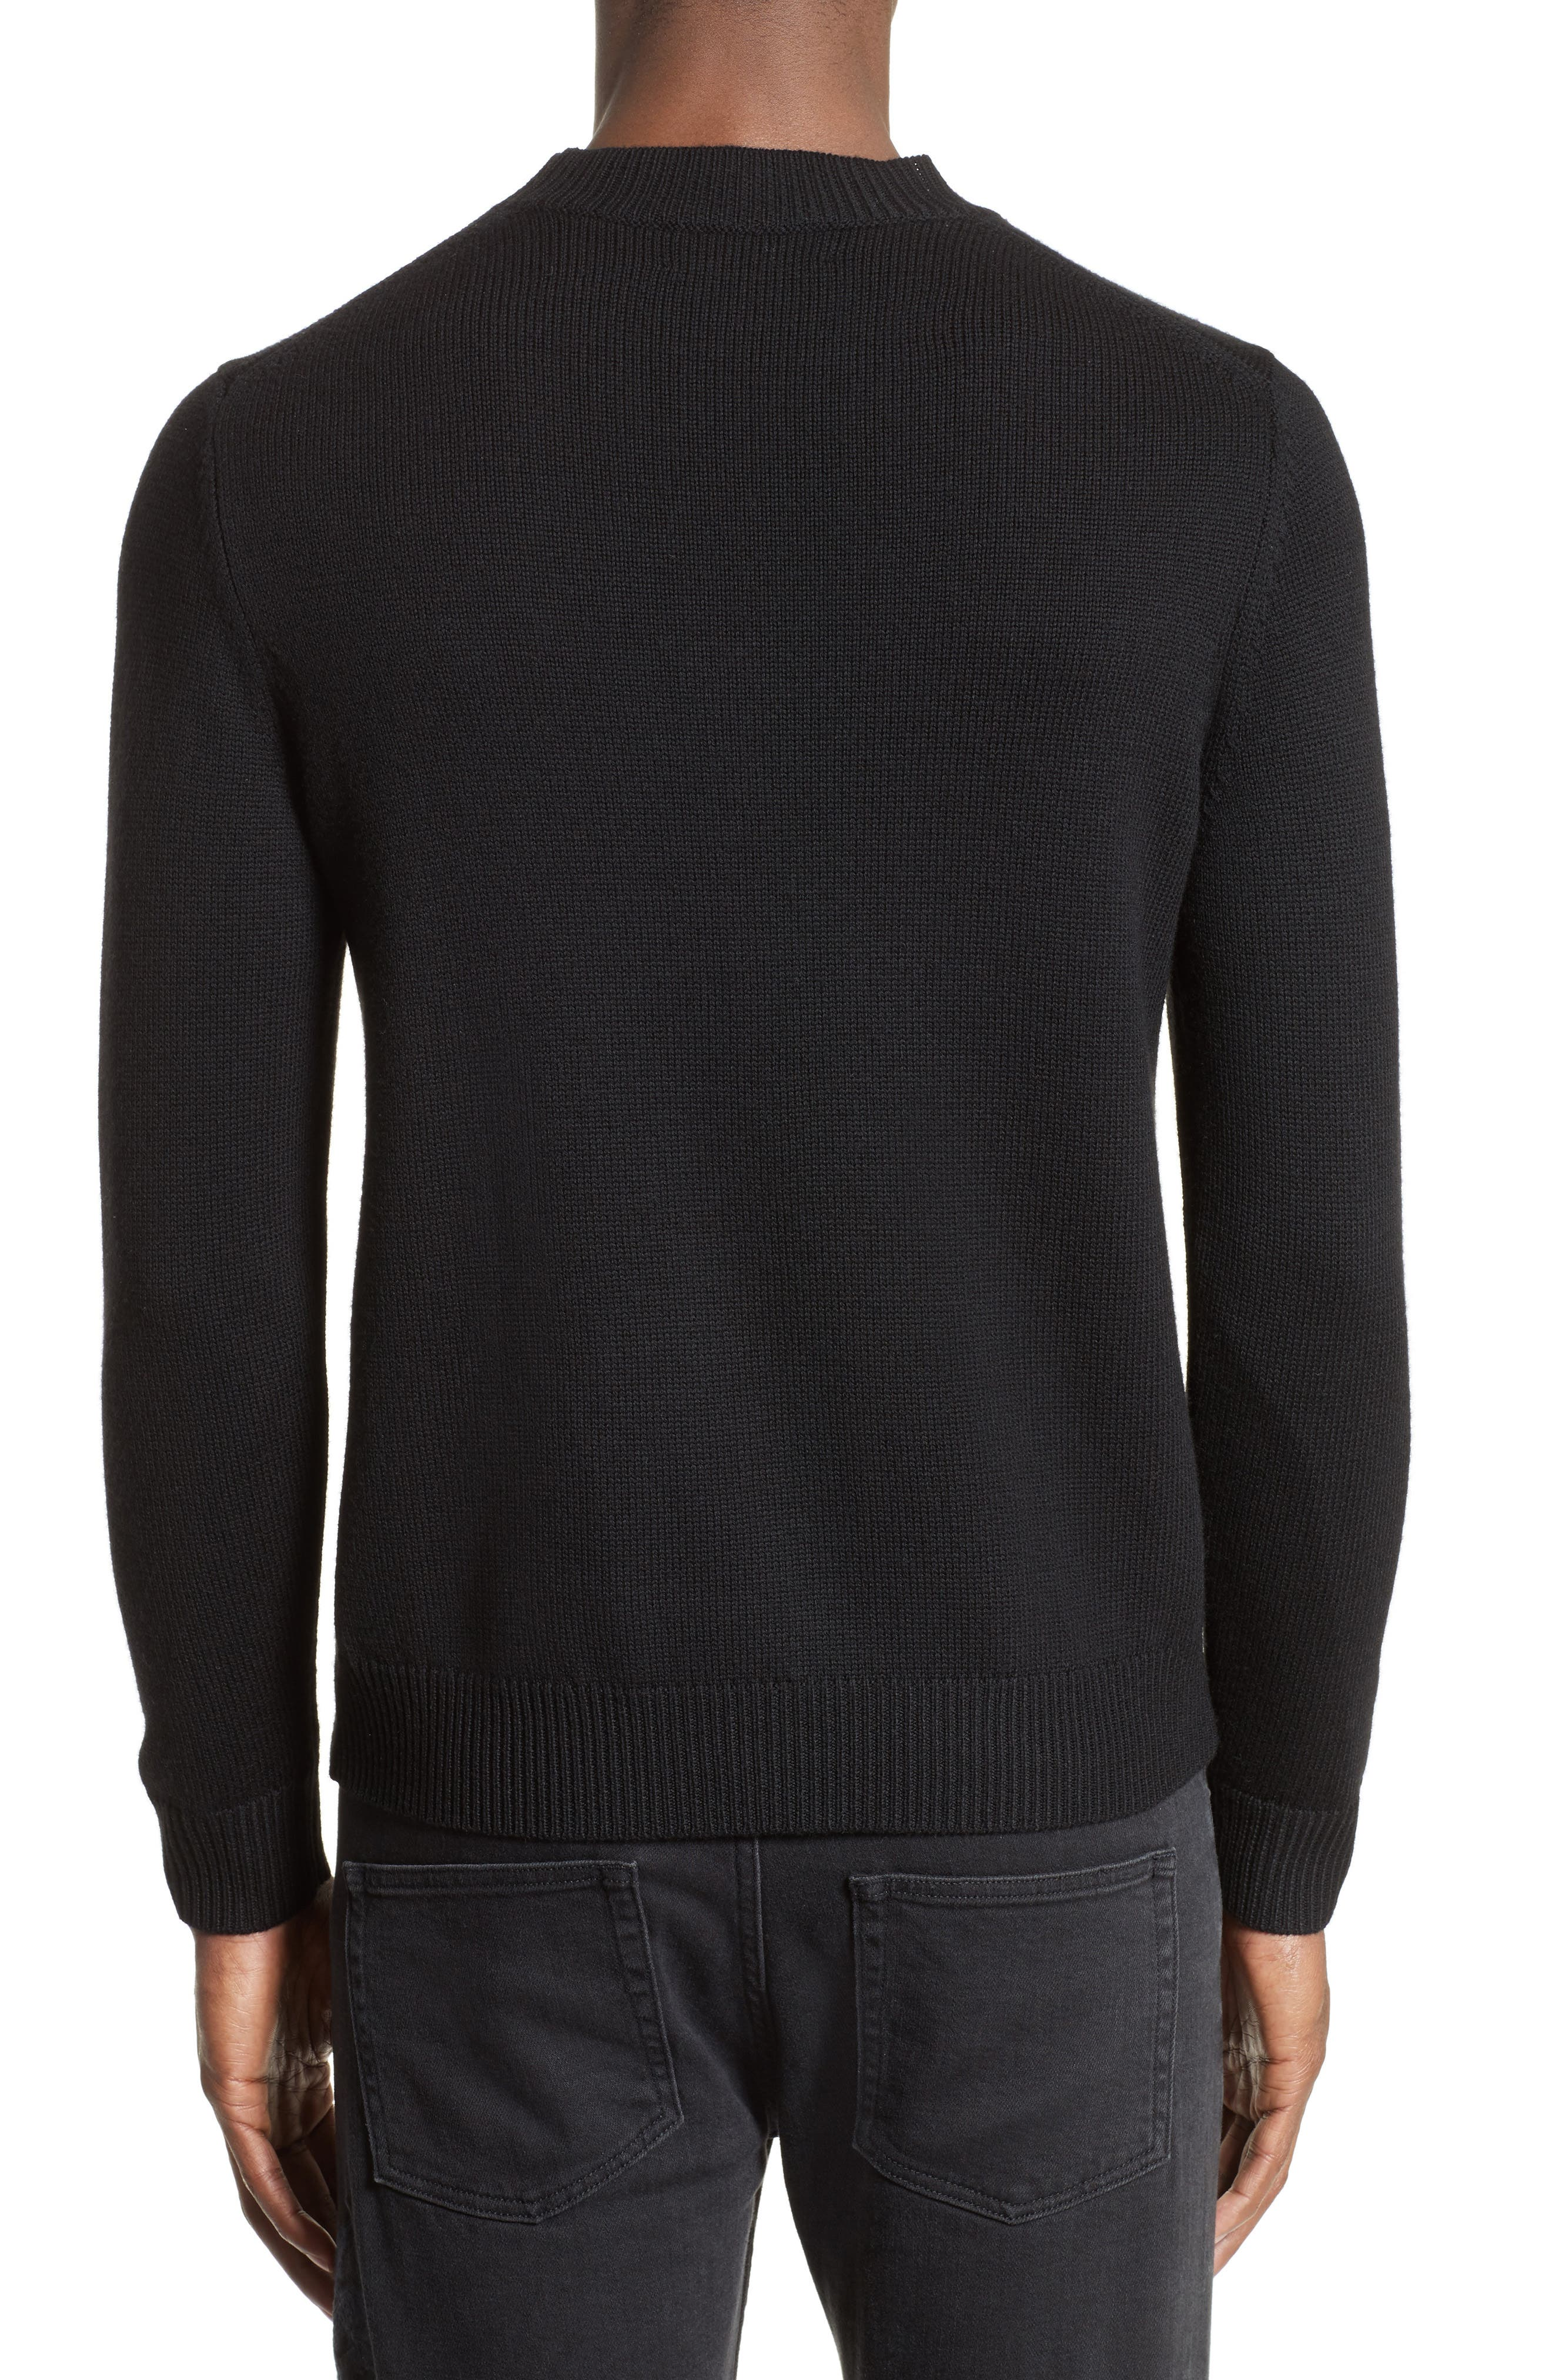 Embroidered Skull Wool Blend Sweater,                             Alternate thumbnail 2, color,                             001